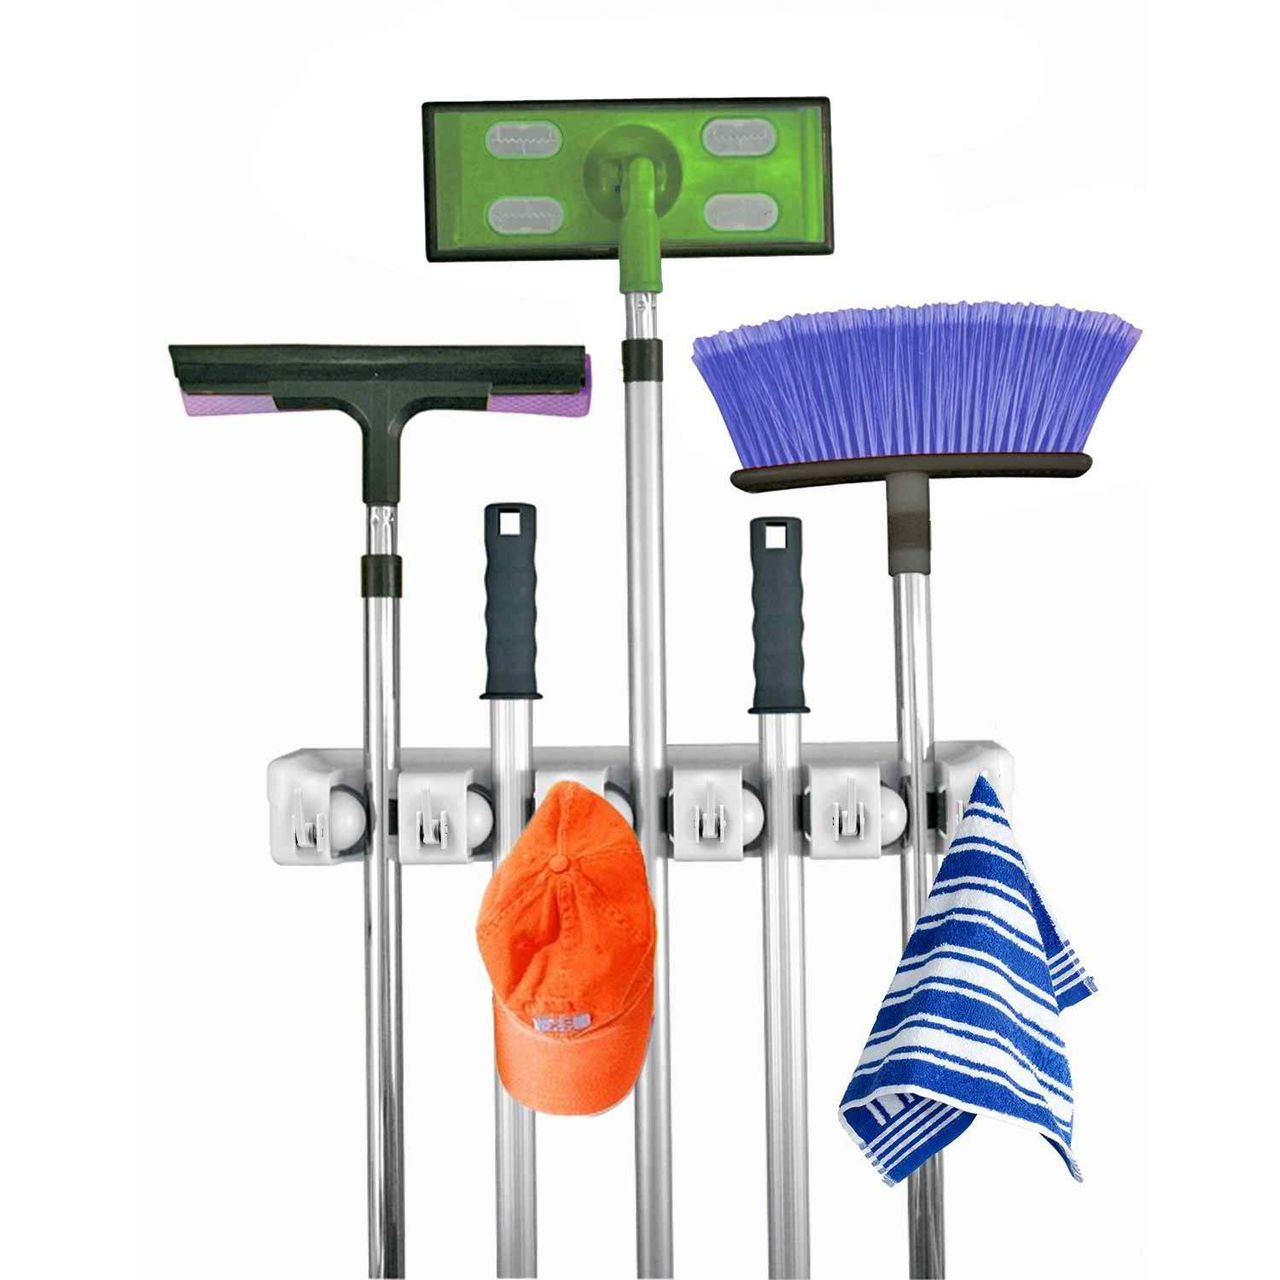 Mop And Broom Holder, 5 Position With 6 Hooks Garage Storage Holds Up To 11